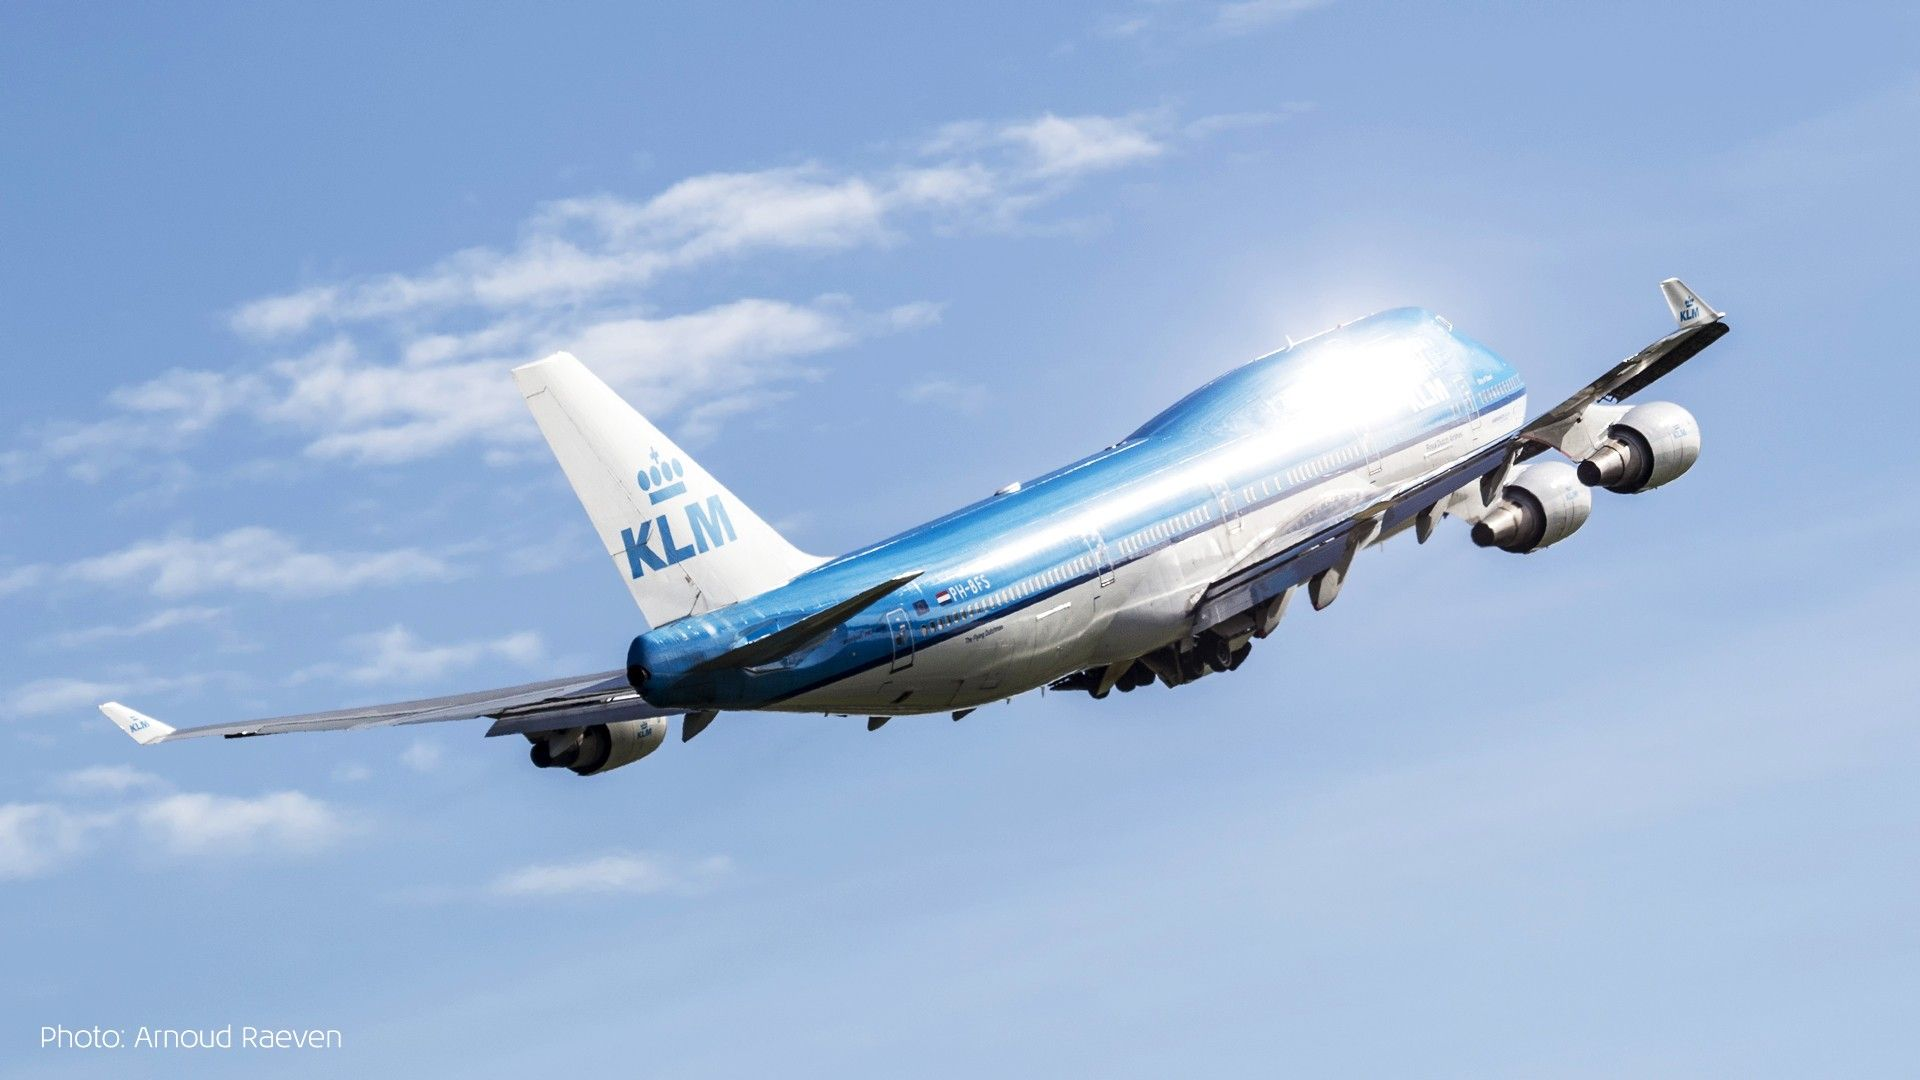 1920x1080 Klm Shareholders Appoint Members To The Supervisory - Boeing ...